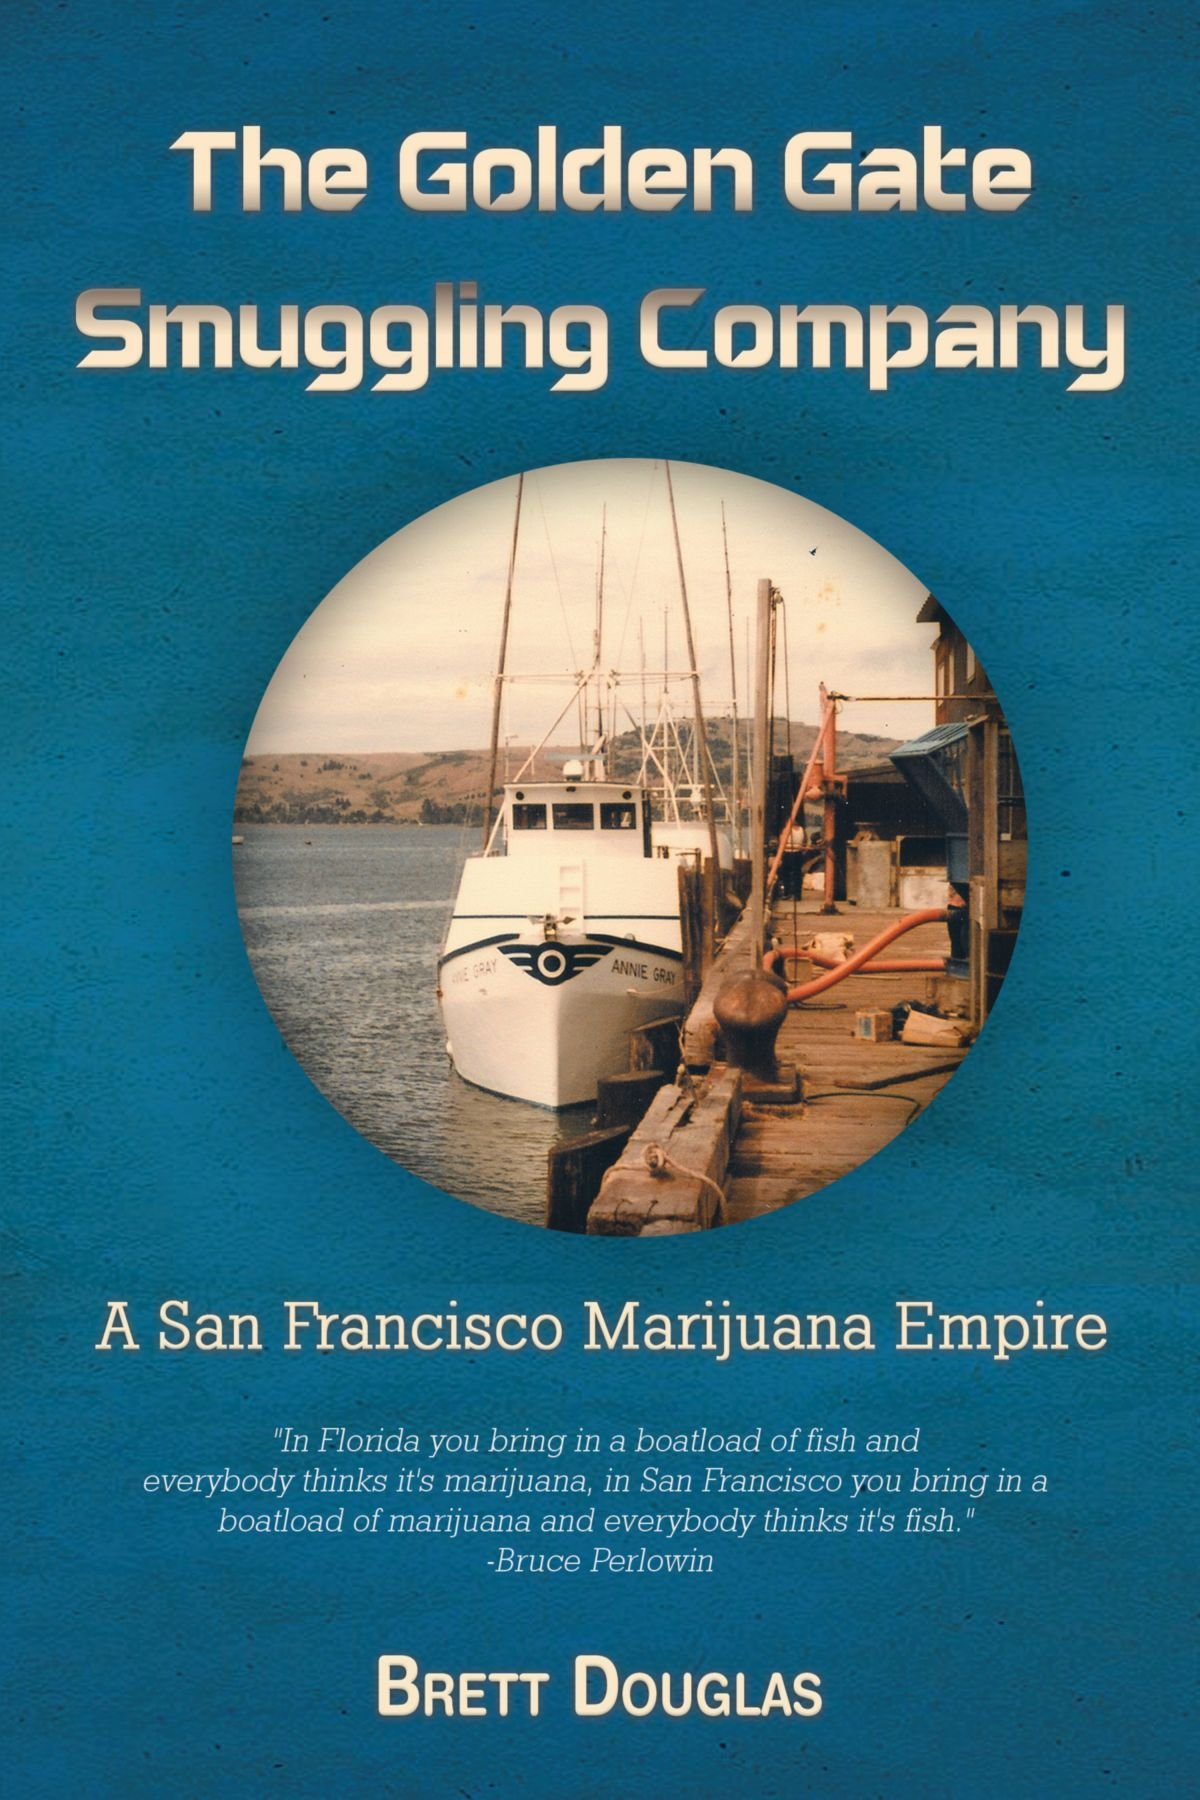 The Golden Gate Smuggling Company: A San Francisco Marijuana Empire pdf